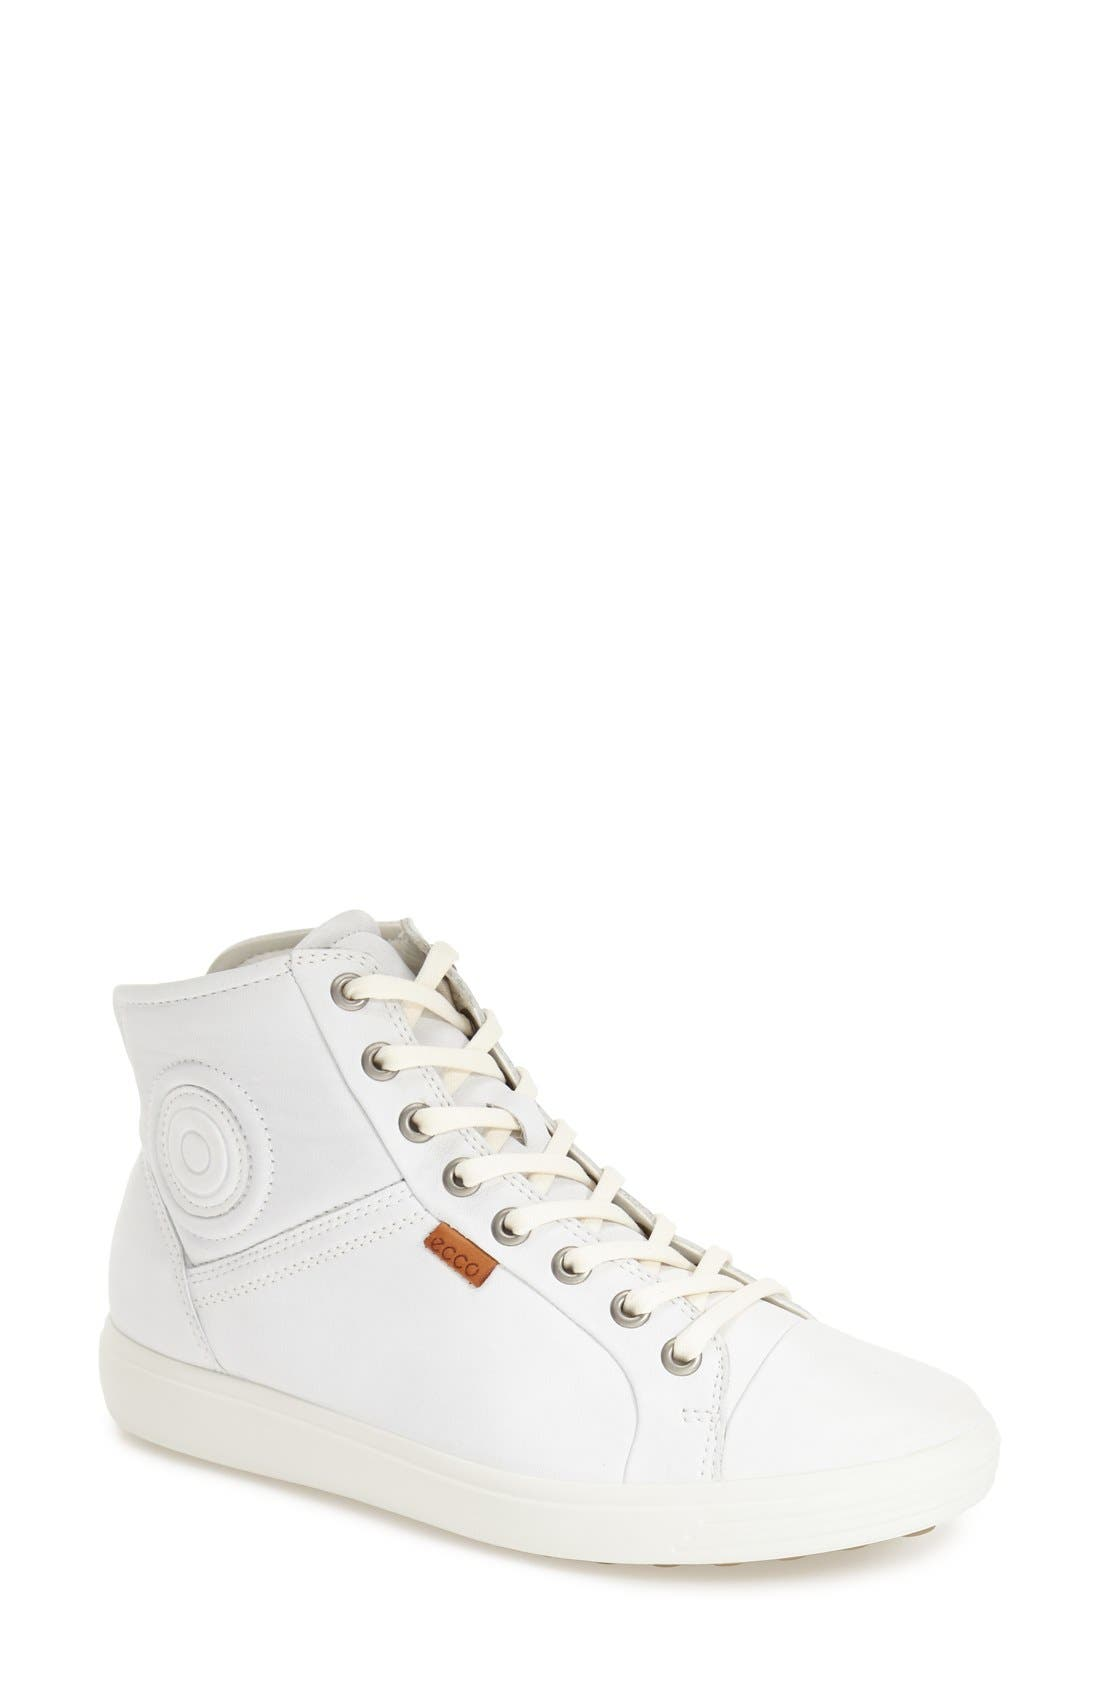 'Soft 7' High Top Sneaker,                             Main thumbnail 1, color,                             WHITE